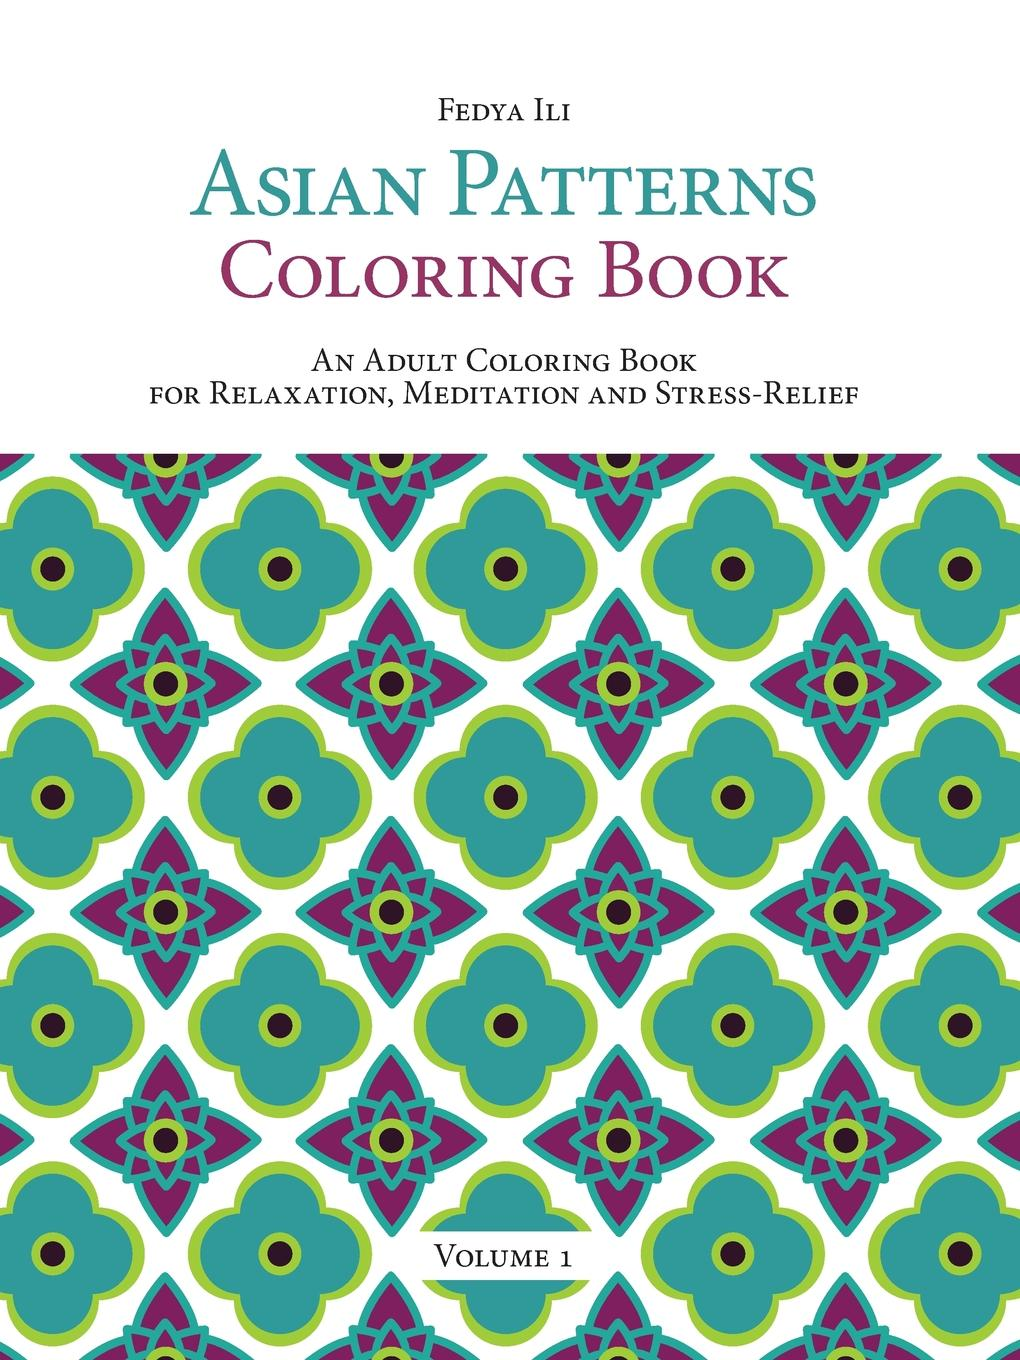 Fedya Ili Asian Patterns Coloring Book. An Adult Coloring Book for Relaxation, Meditation and Stress-Relief (Volume 1) printio vstre4a ili rastovanie